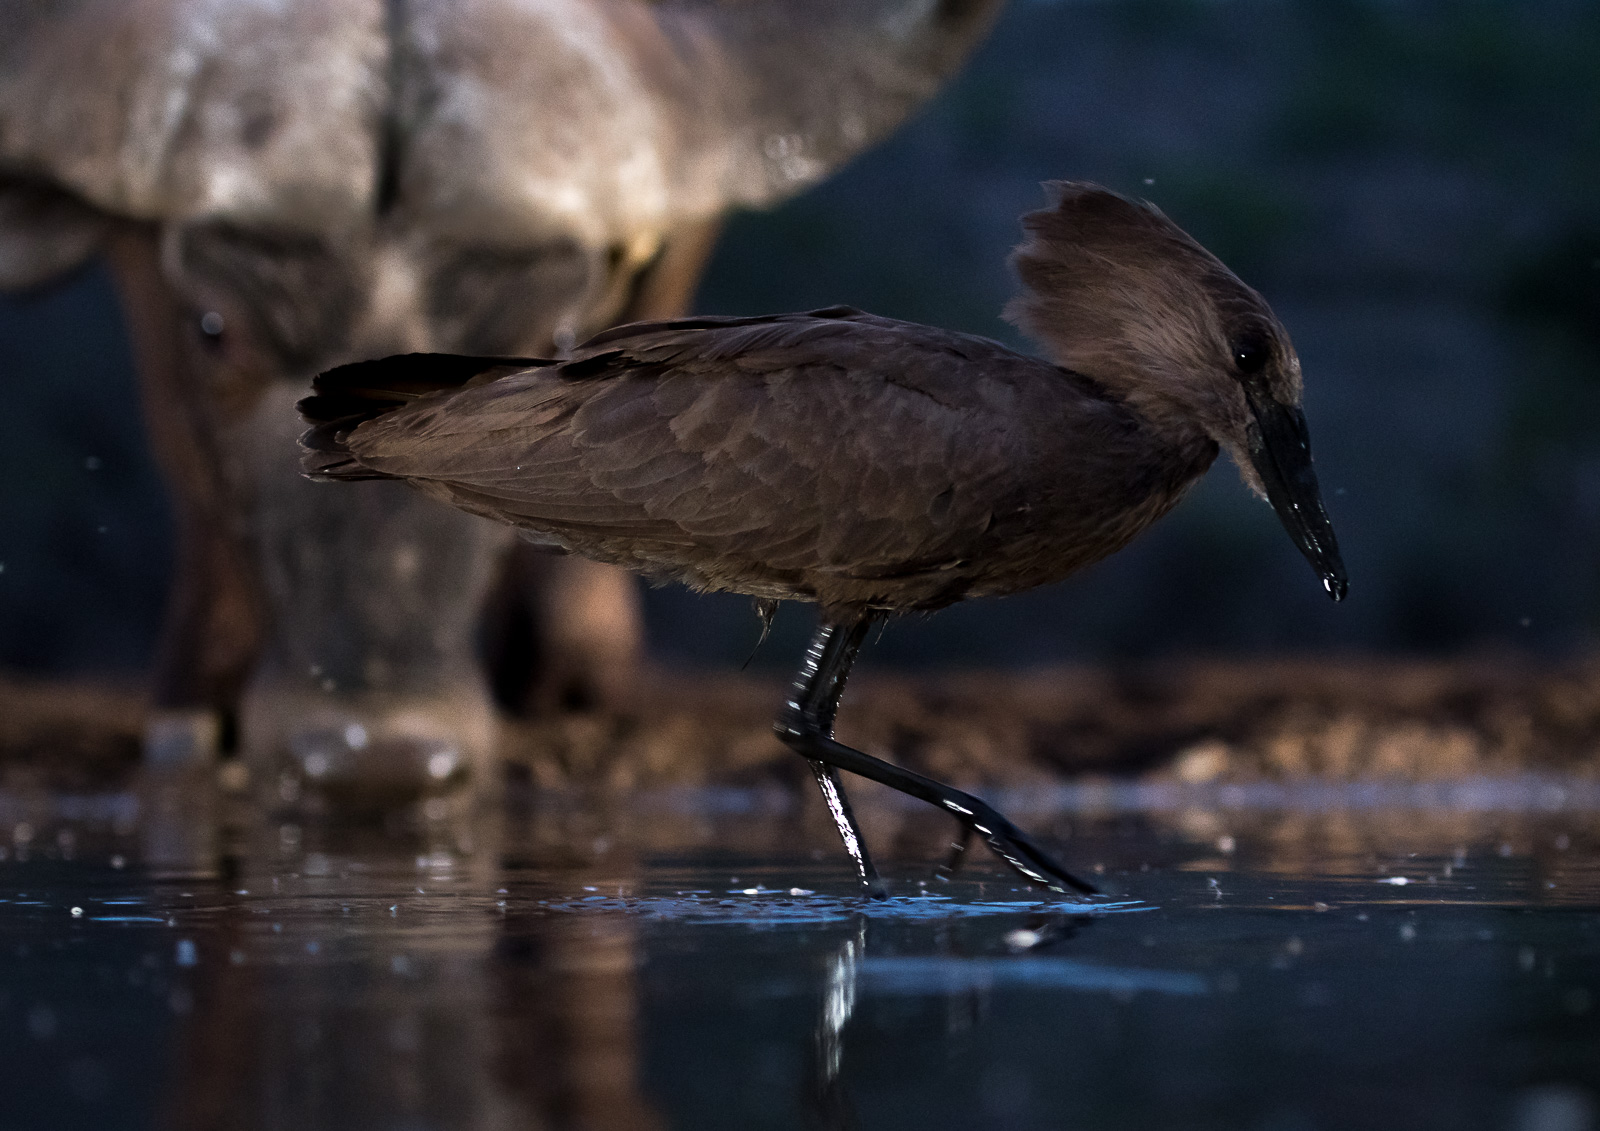 UMGODI: Hamerkop with Cape Buffalo in the background  Nikon D500 70-200mm f2.8 at 70mm. 1/200, f2.8, ISO1000